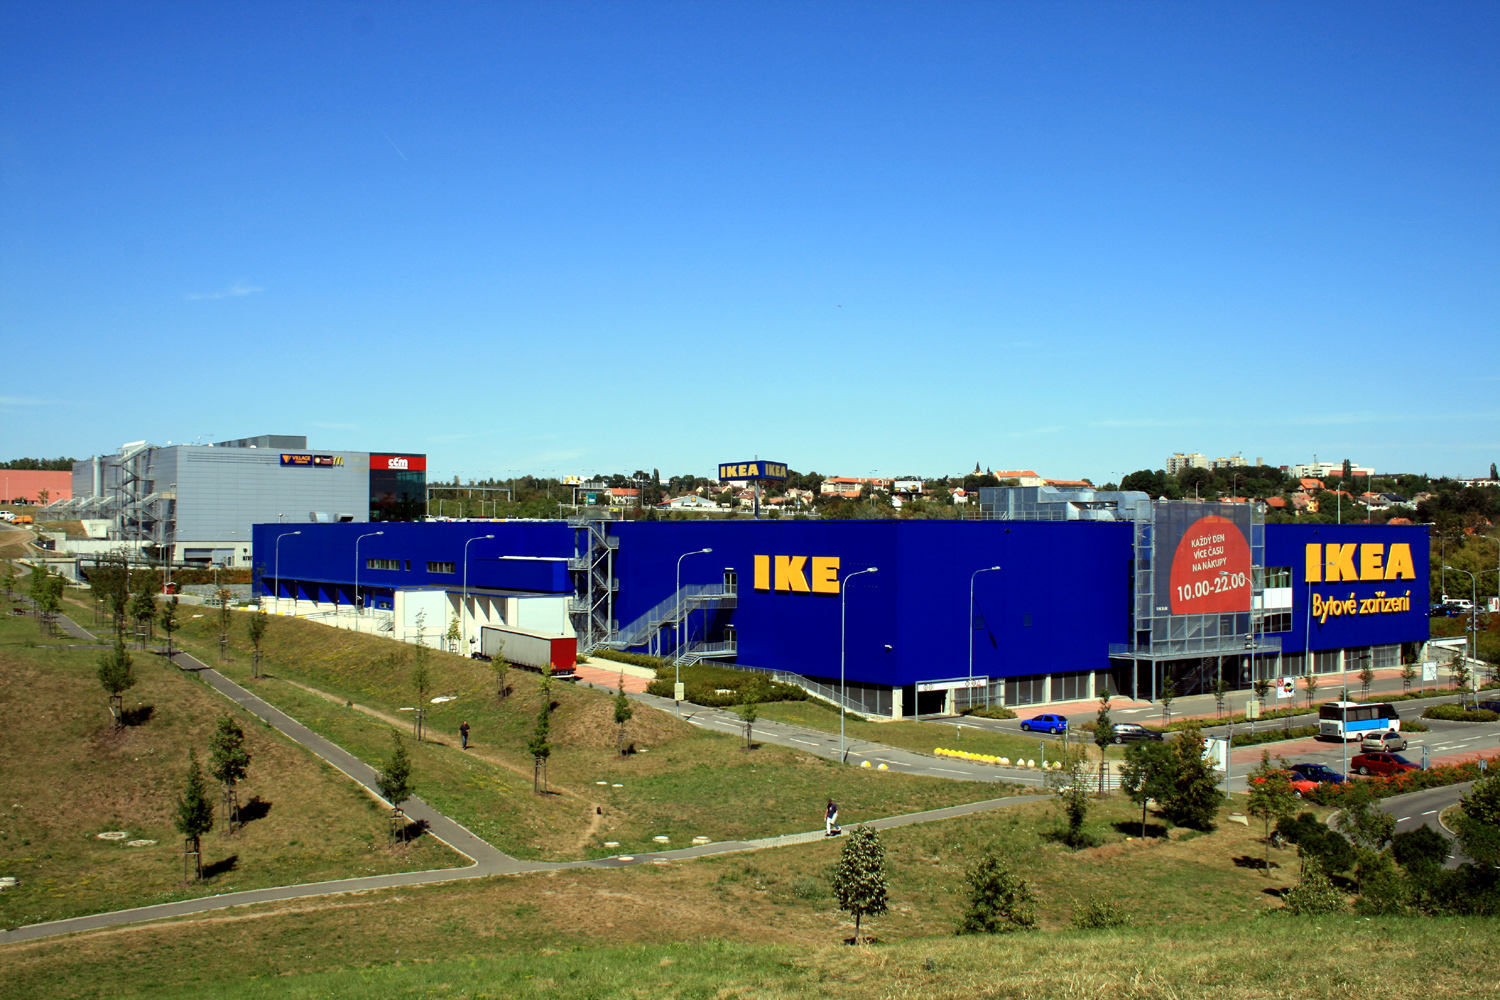 The IKEA store we visited, in Cerny Most, Prague